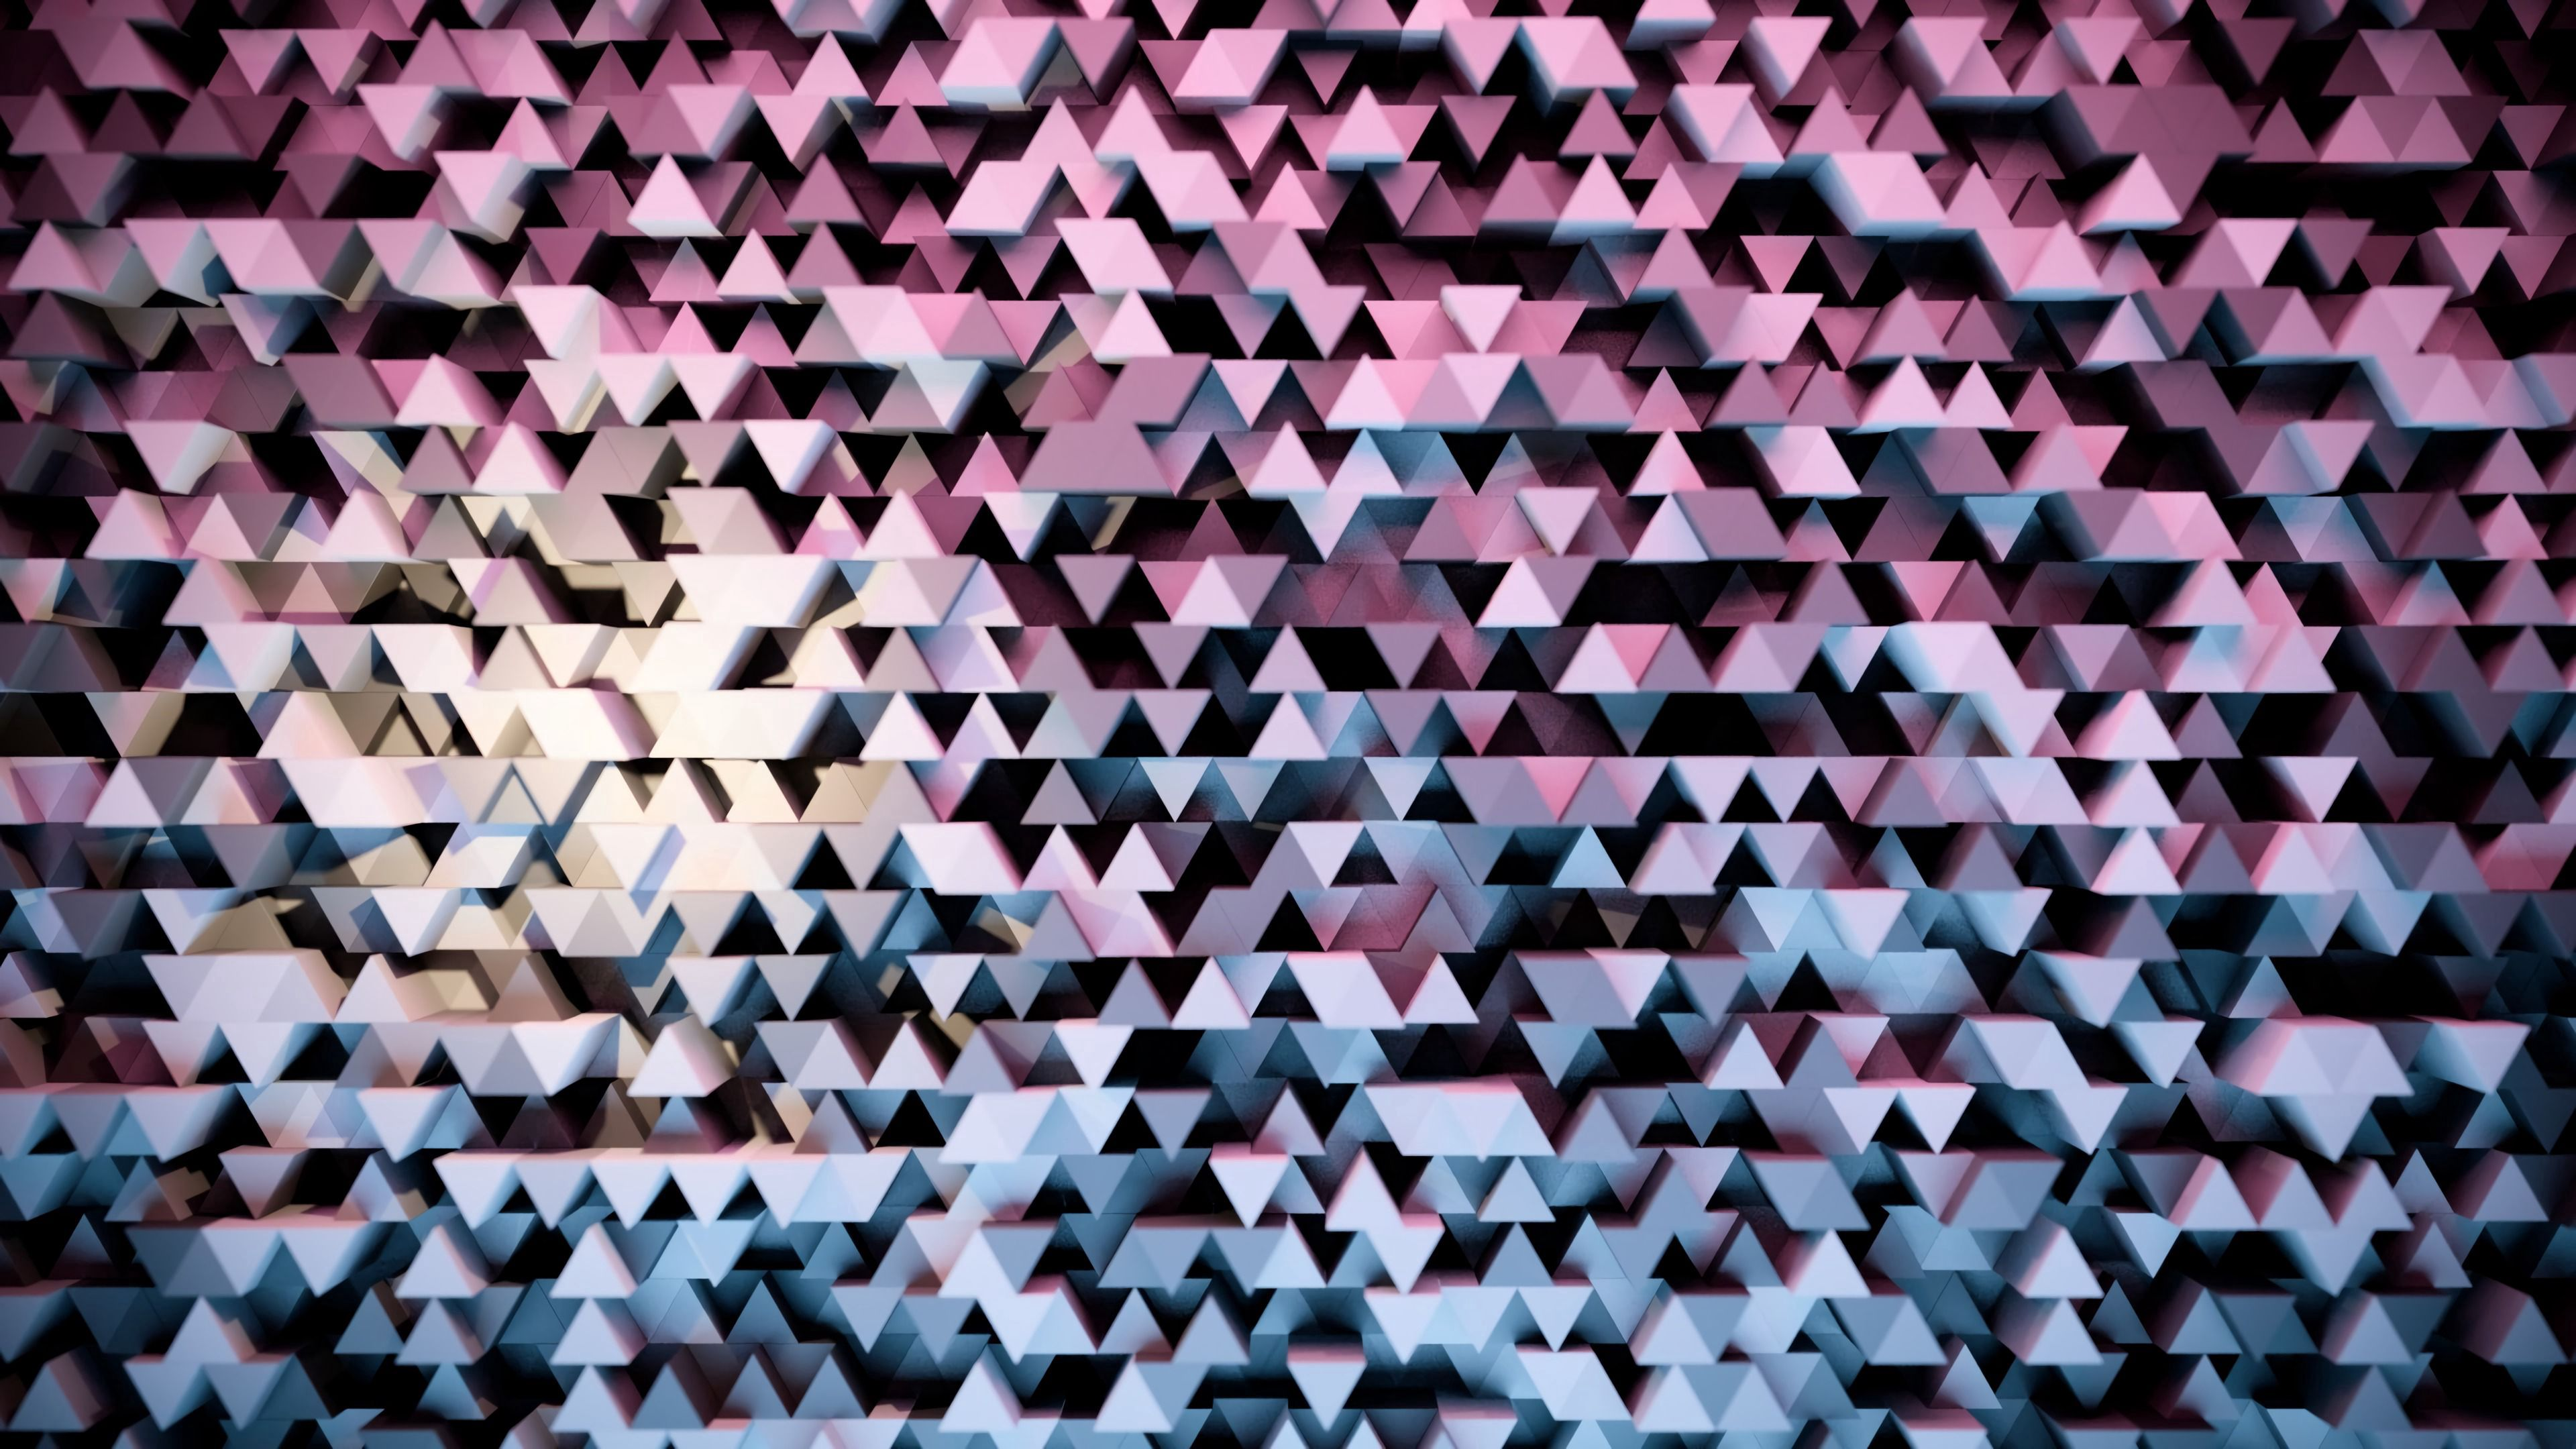 139315 download wallpaper Abstract, Triangles, Volume, 3D screensavers and pictures for free